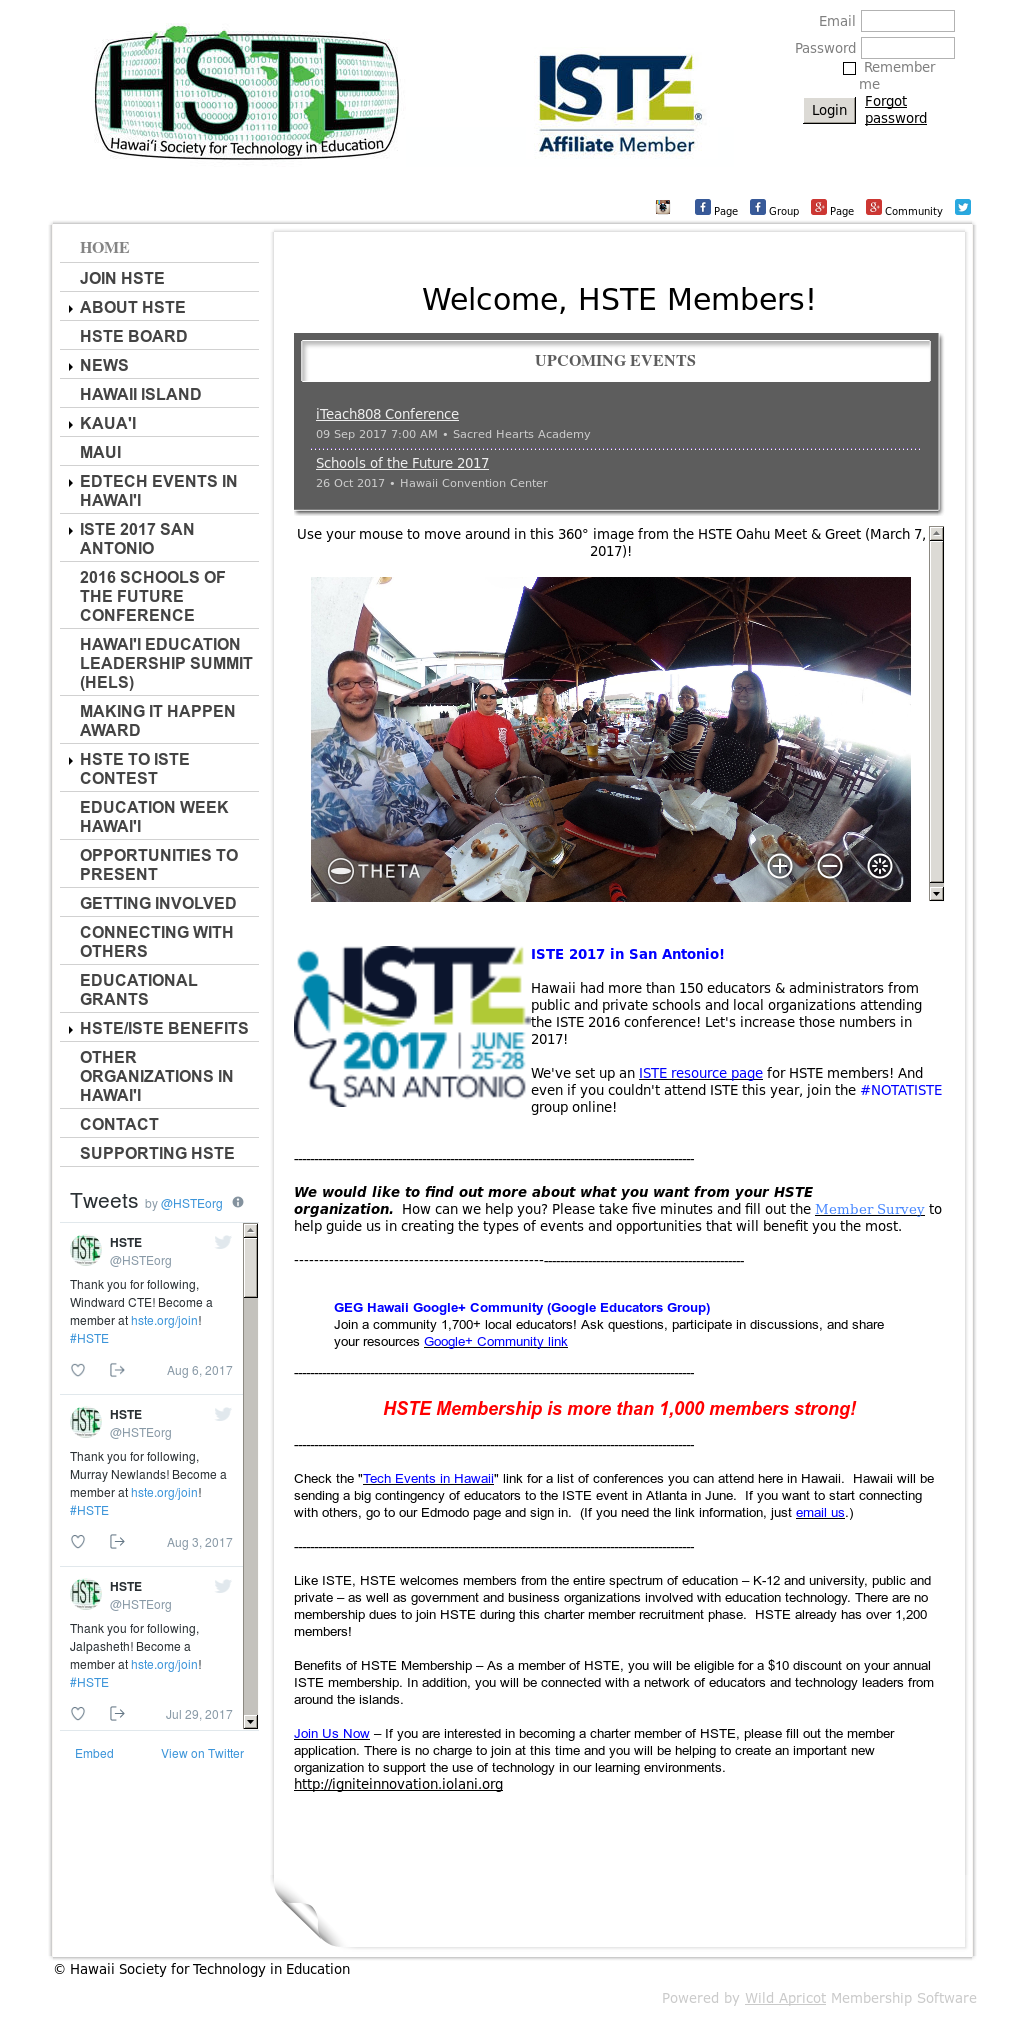 Hste Hawaii Society For Technology In Education website history